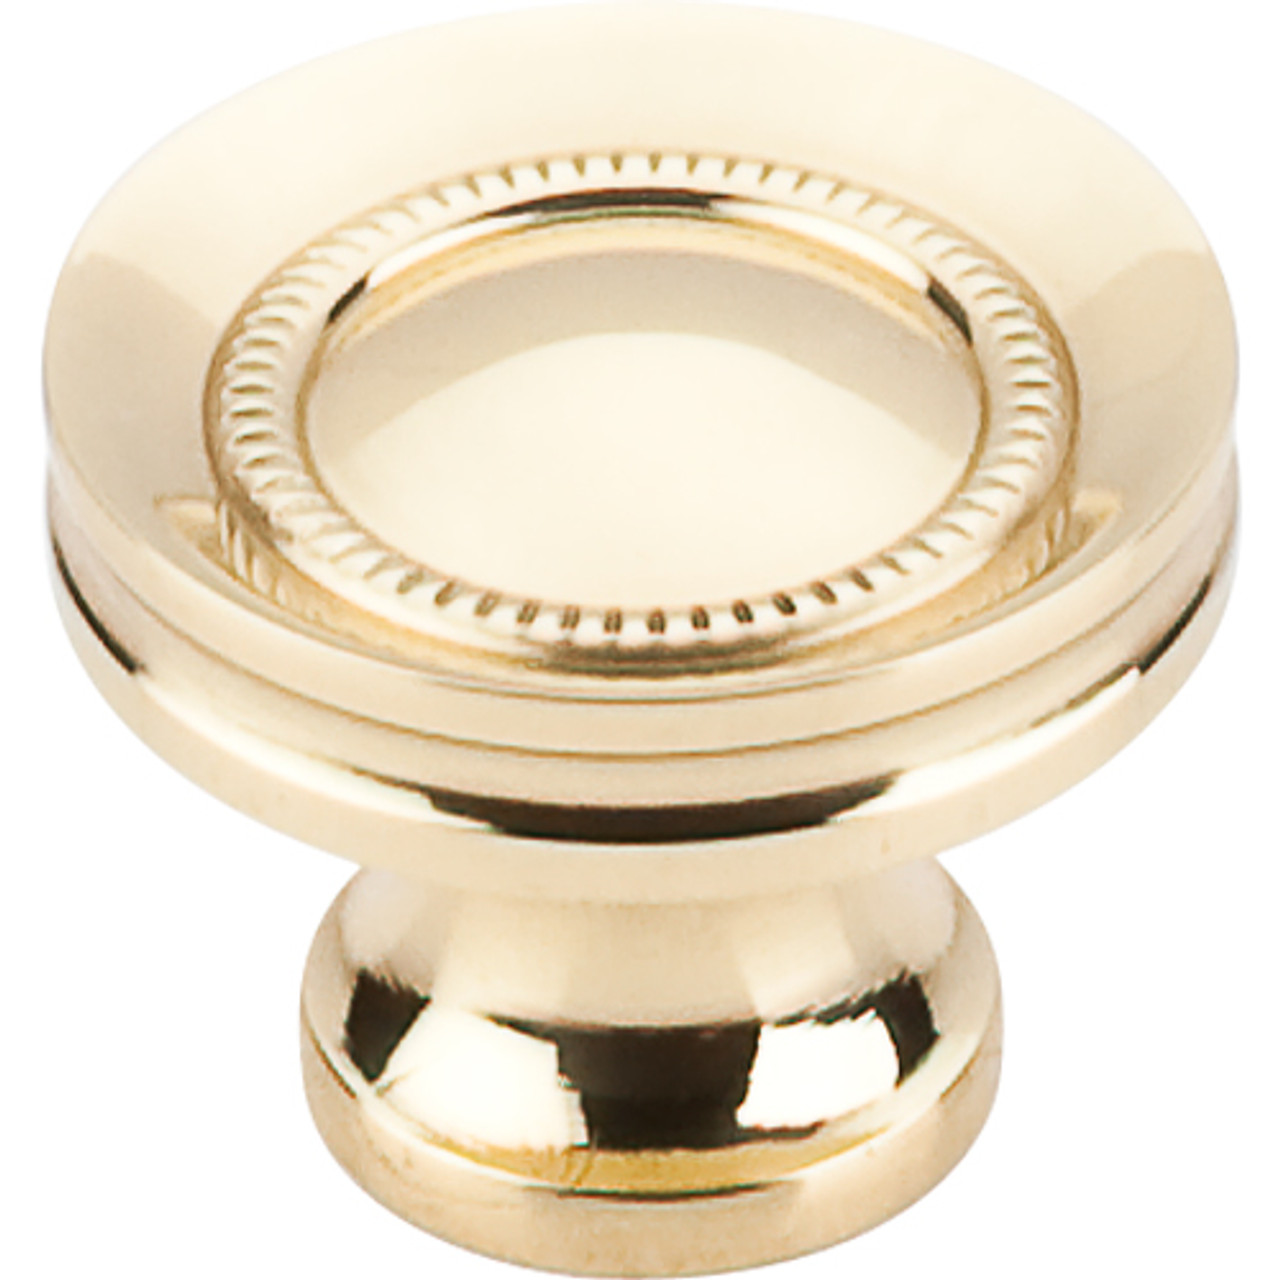 Top Knobs - Button Faced Knob  - Polished Brass (TKM290)